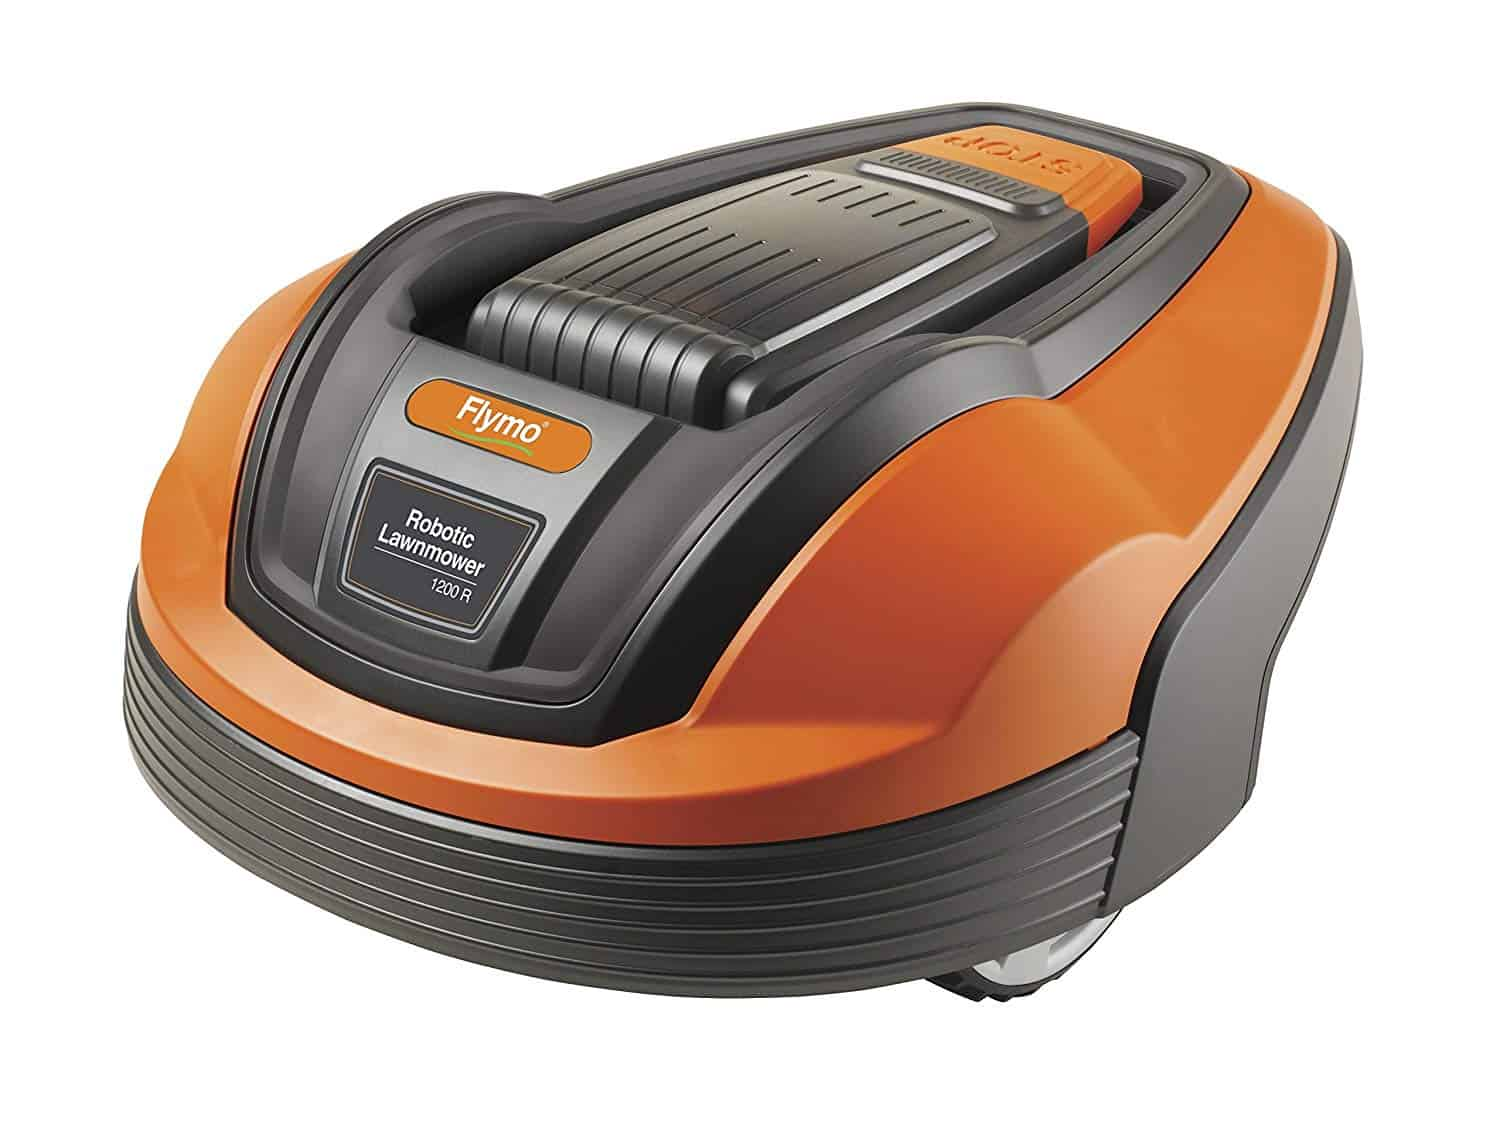 Flymo 1200r Review Lithium Ion Robotic Lawn Mower